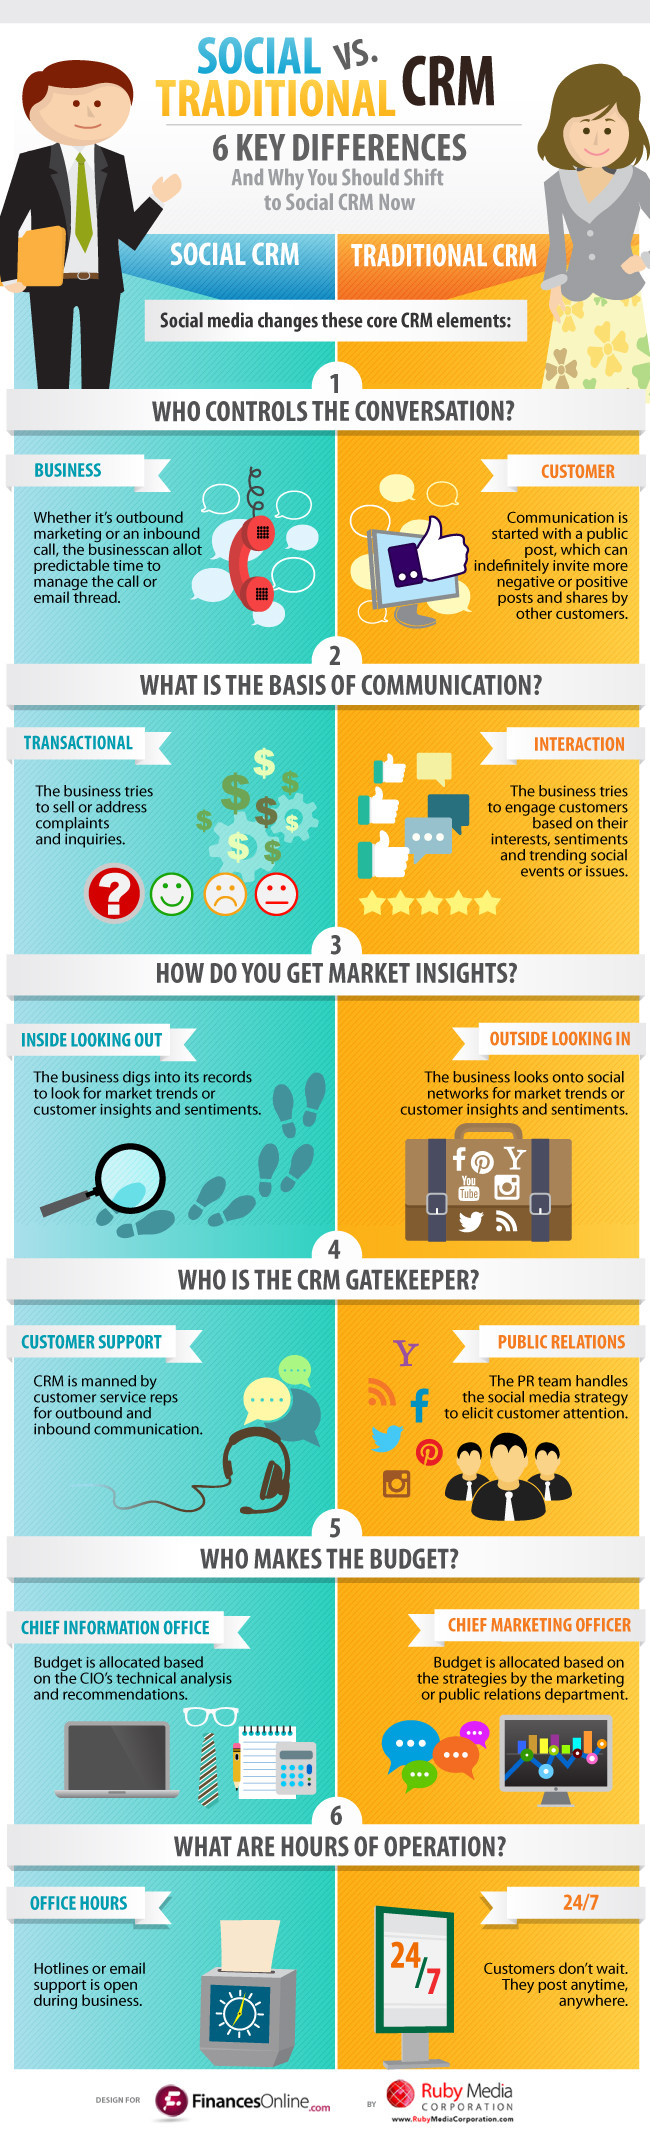 Infographic: Social vs Traditional CRM